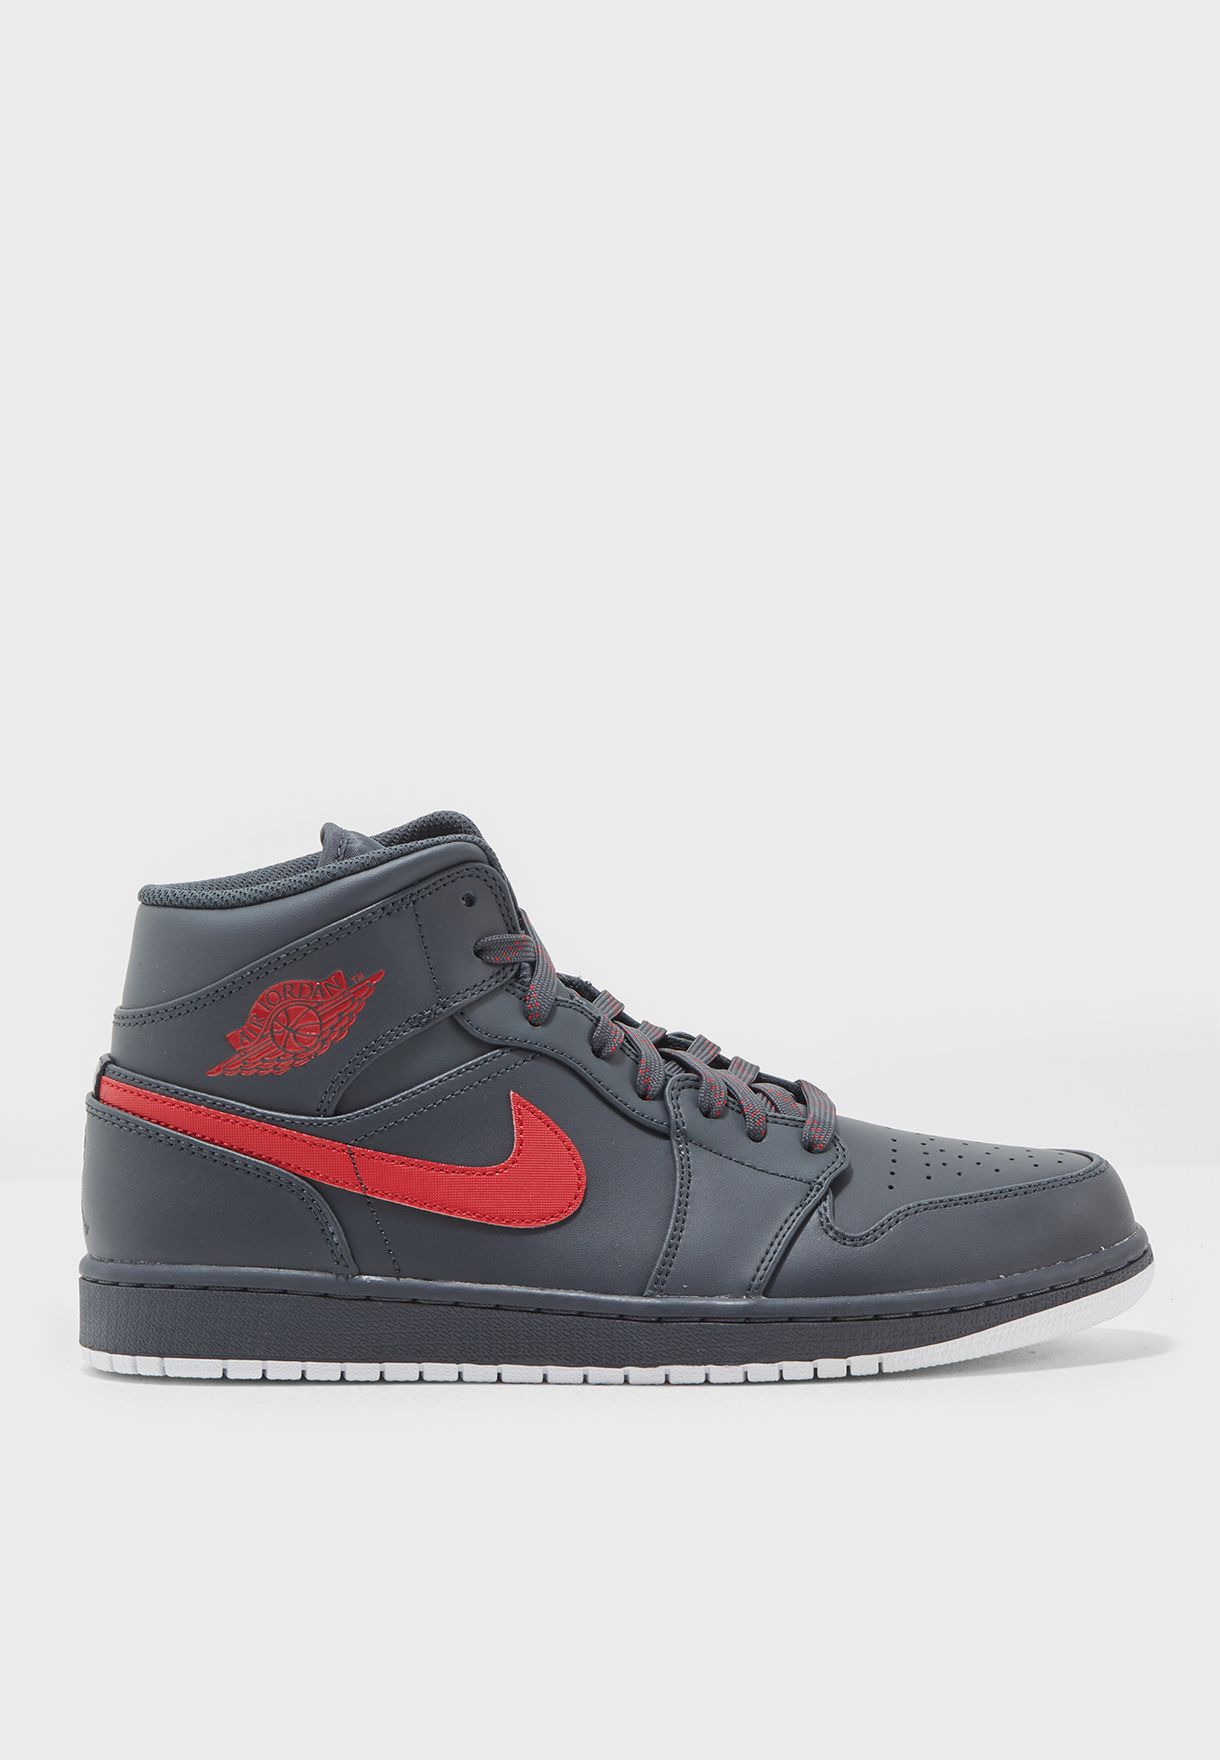 dbf727c44b91d7 Shop Nike grey Air Jordan 1 Mid 554724-045 for Men in Kuwait ...